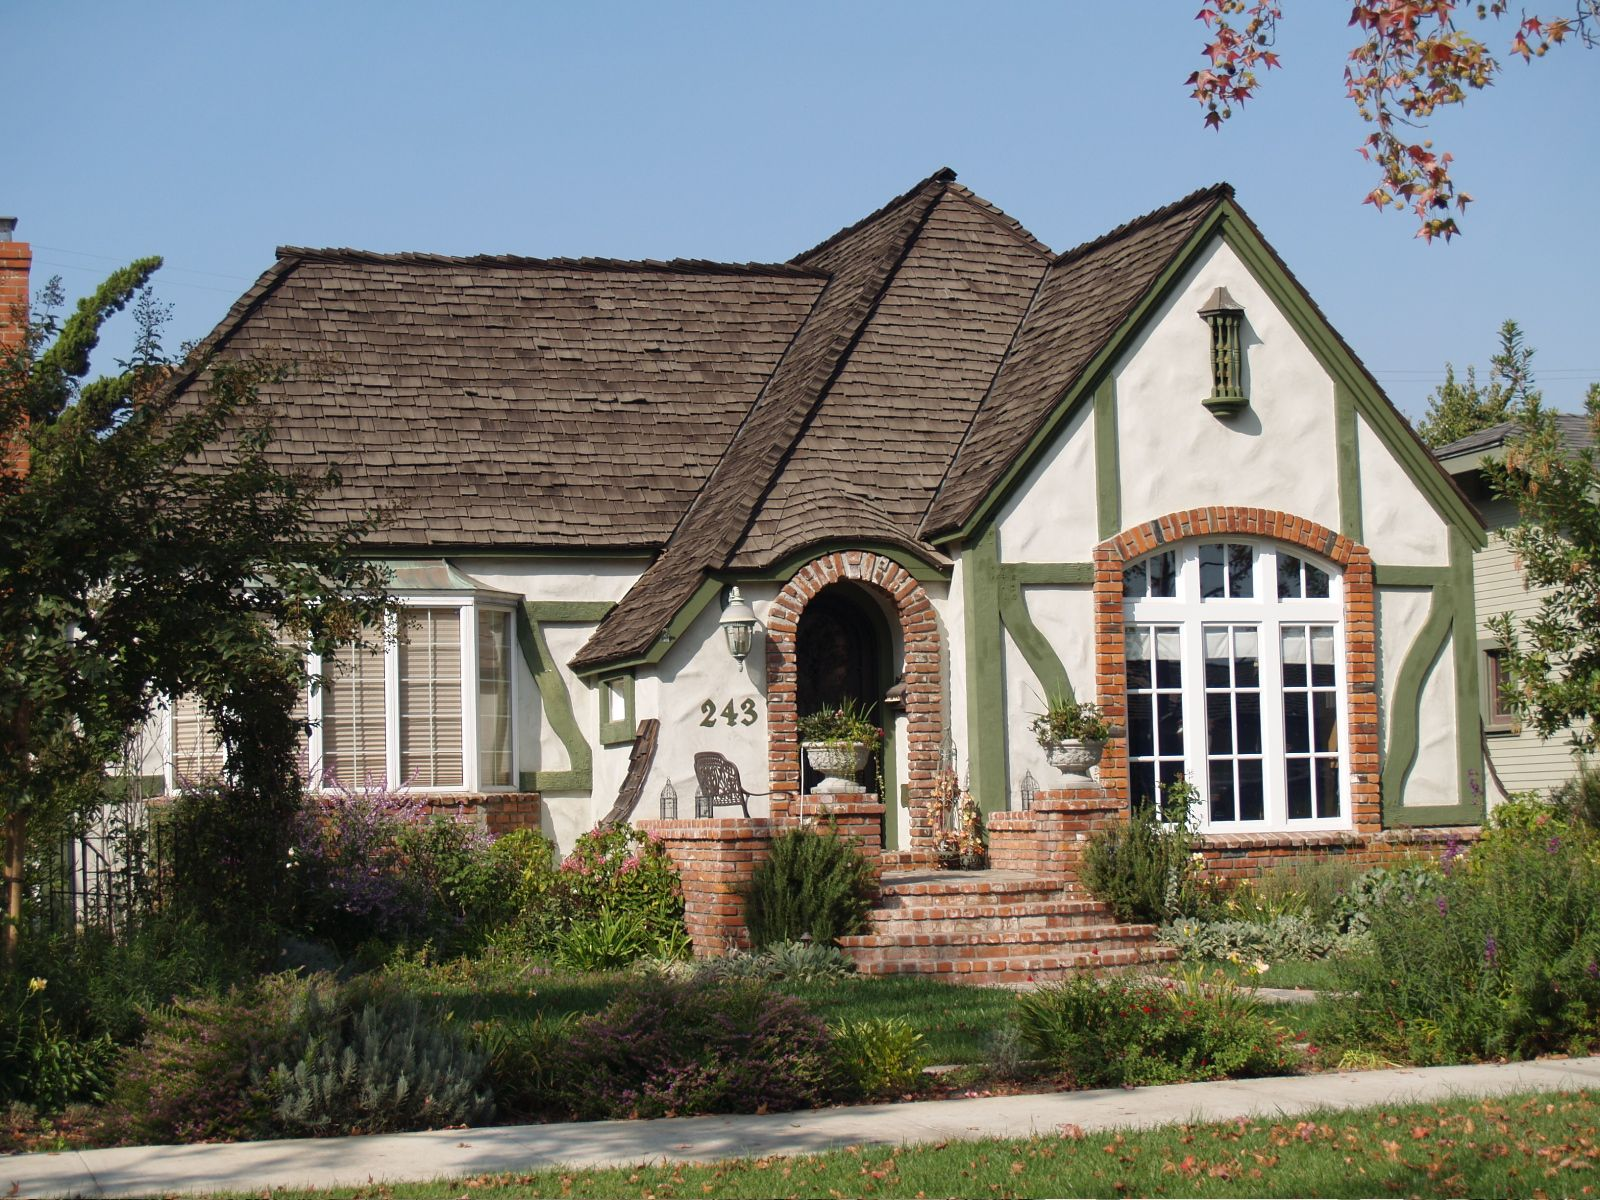 Tudor style bungalow house in long beach california for Craftsman style homes for sale in california